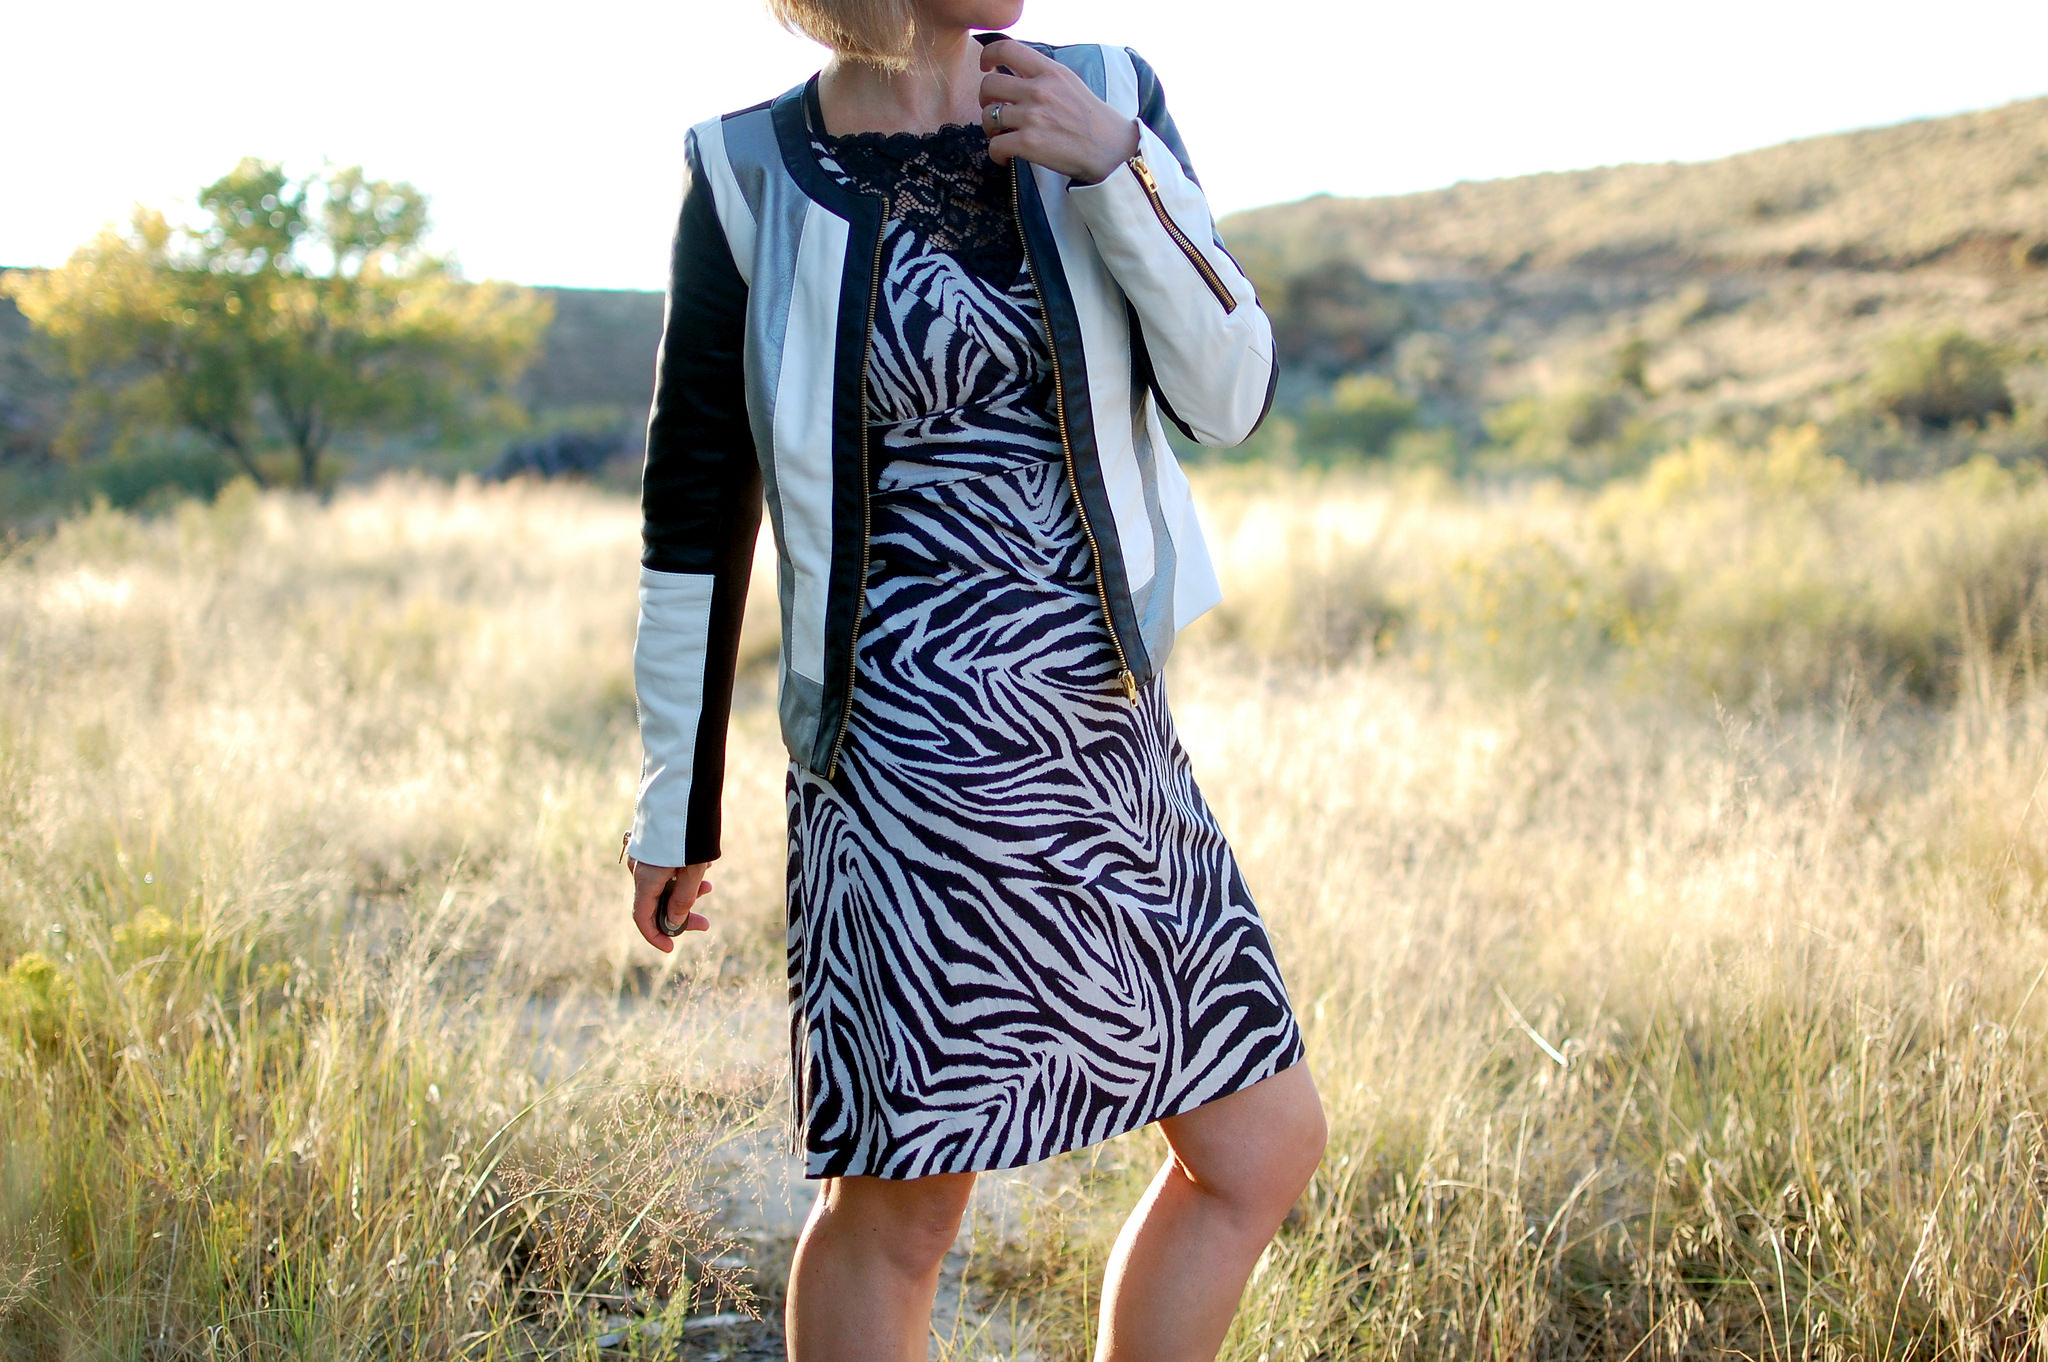 zebra striped dress moto jacket daily outfit blog ootd whatiwore2day